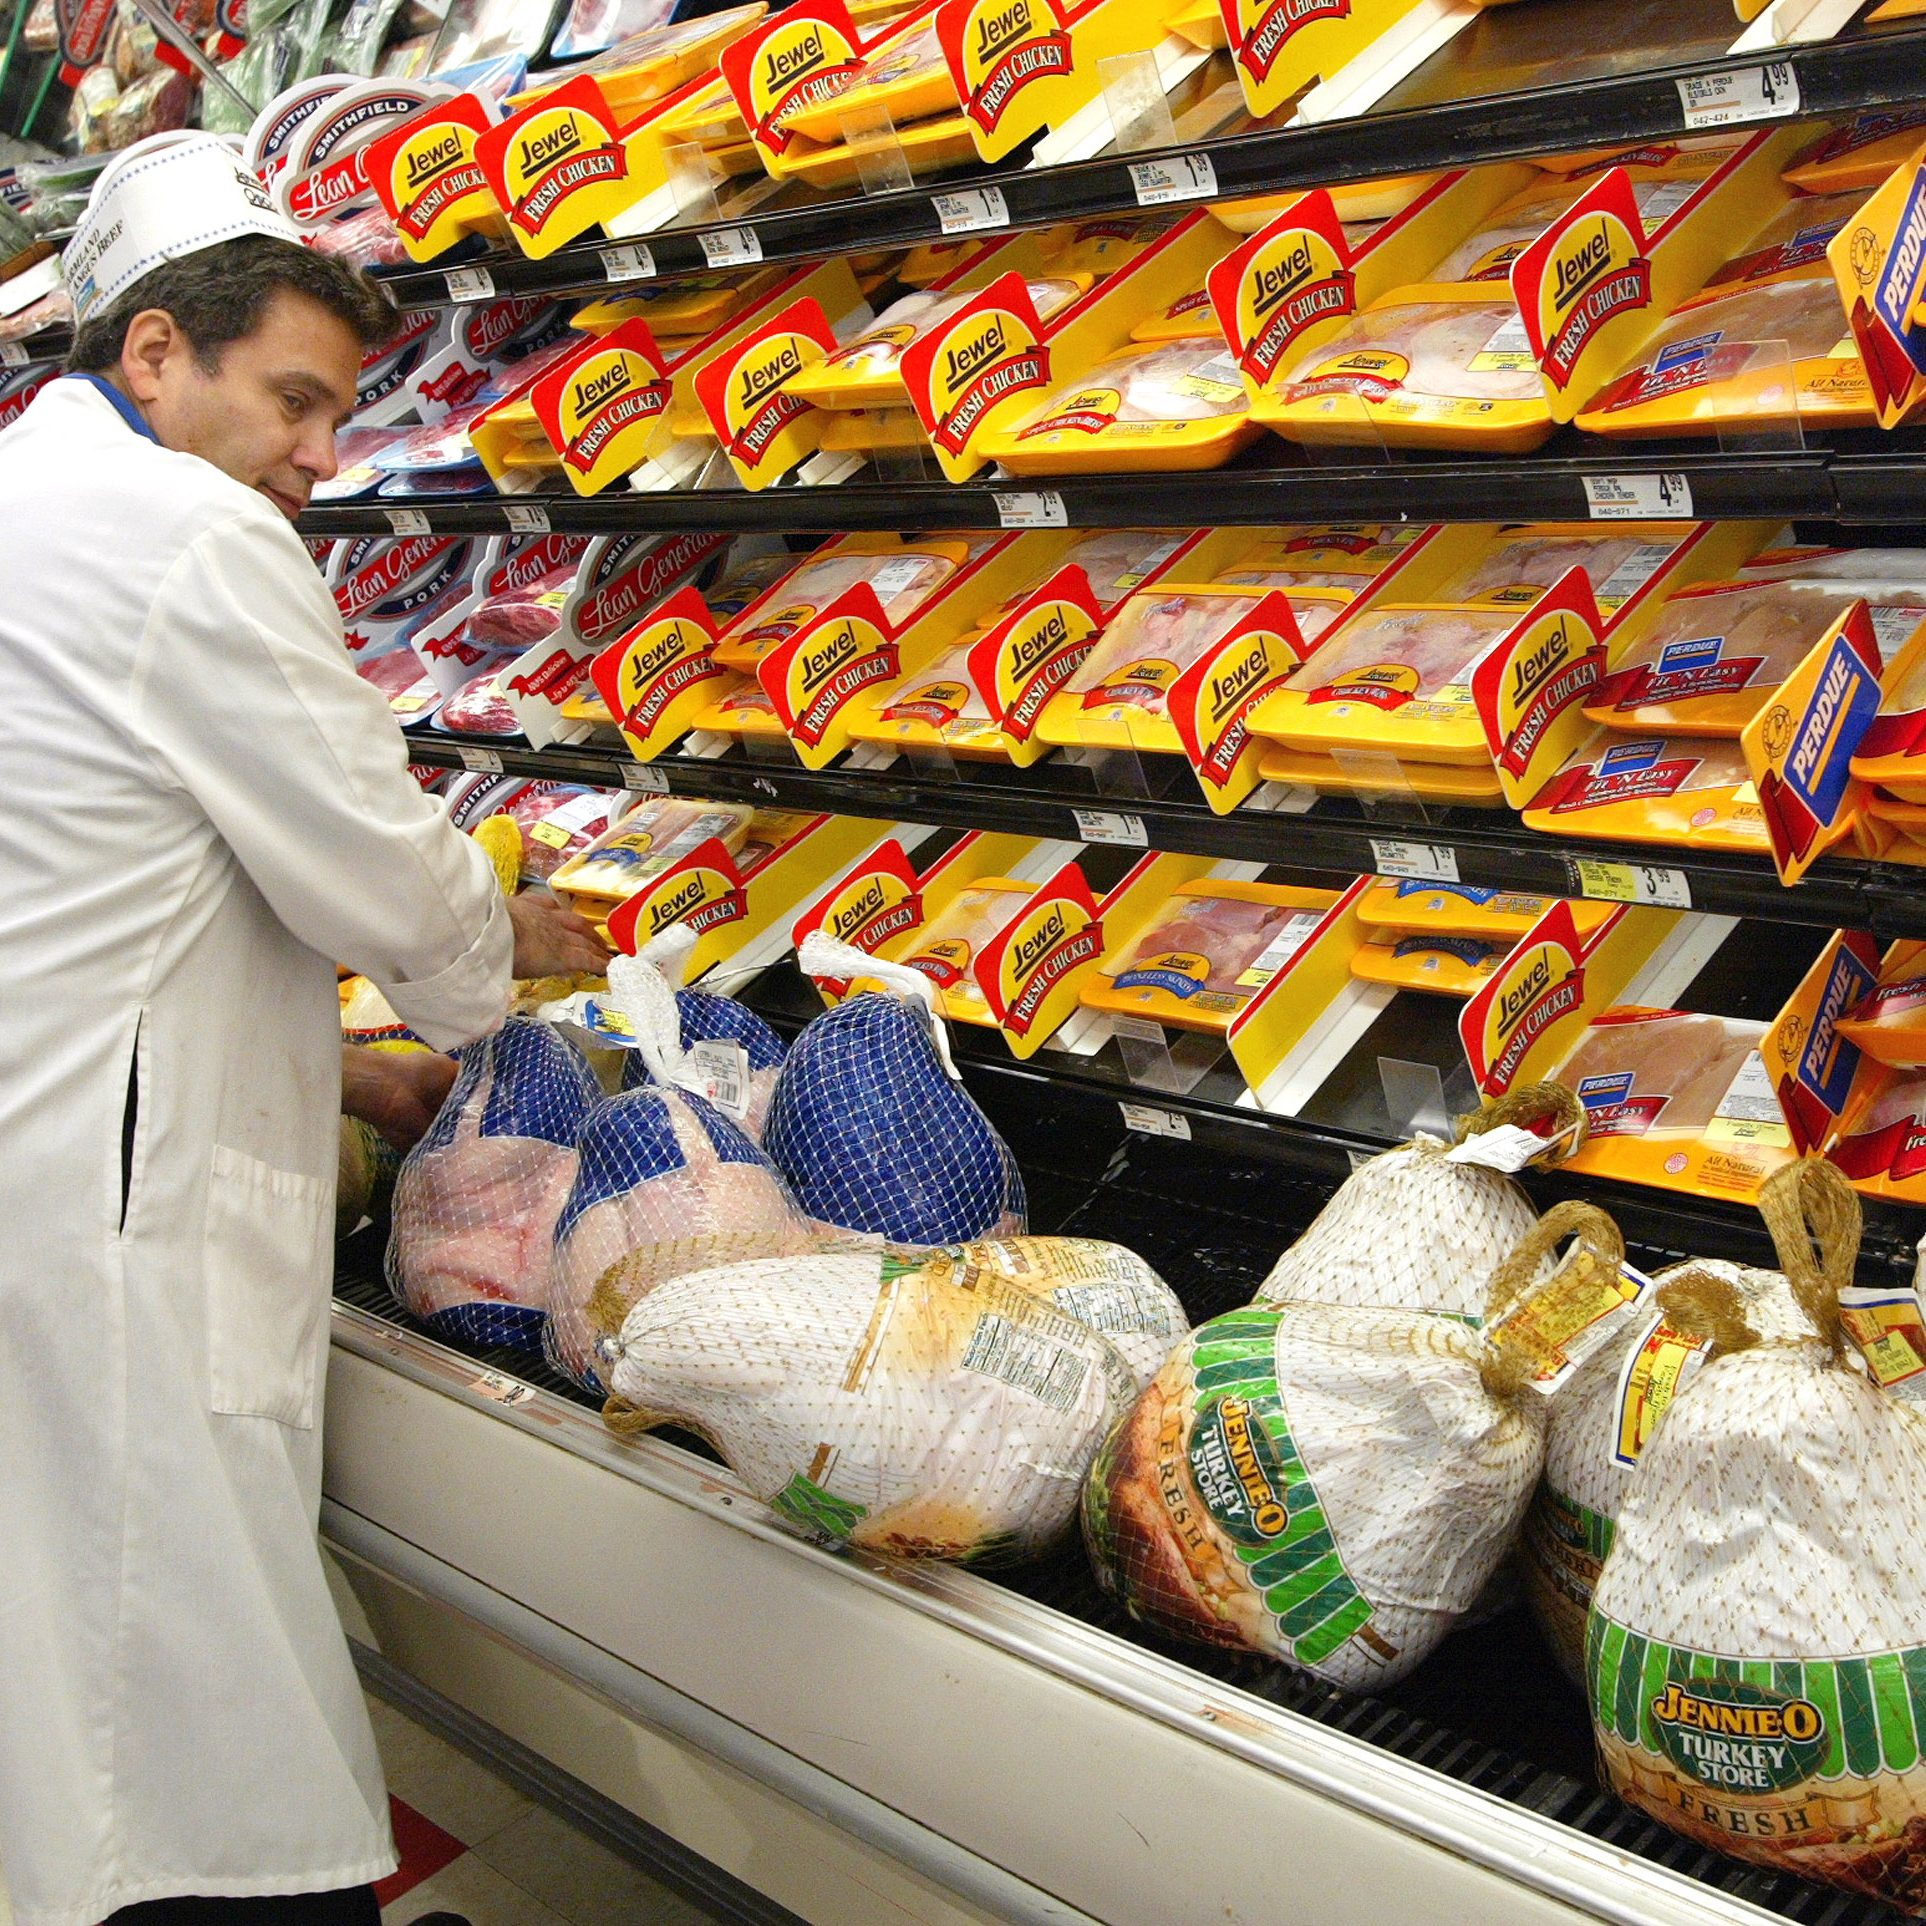 DES PLAINES, IL - NOVEMBER 26: Meat wrapper Rick Shapiro restocks and arranges turkeys November 26, 2002 at a Jewel-Osco food store in Des Plaines, Illinois. With Thanksgiving just two days away, supermarket shoppers are busy with their last-minute needs. (Photo by Tim Boyle/Getty Images)